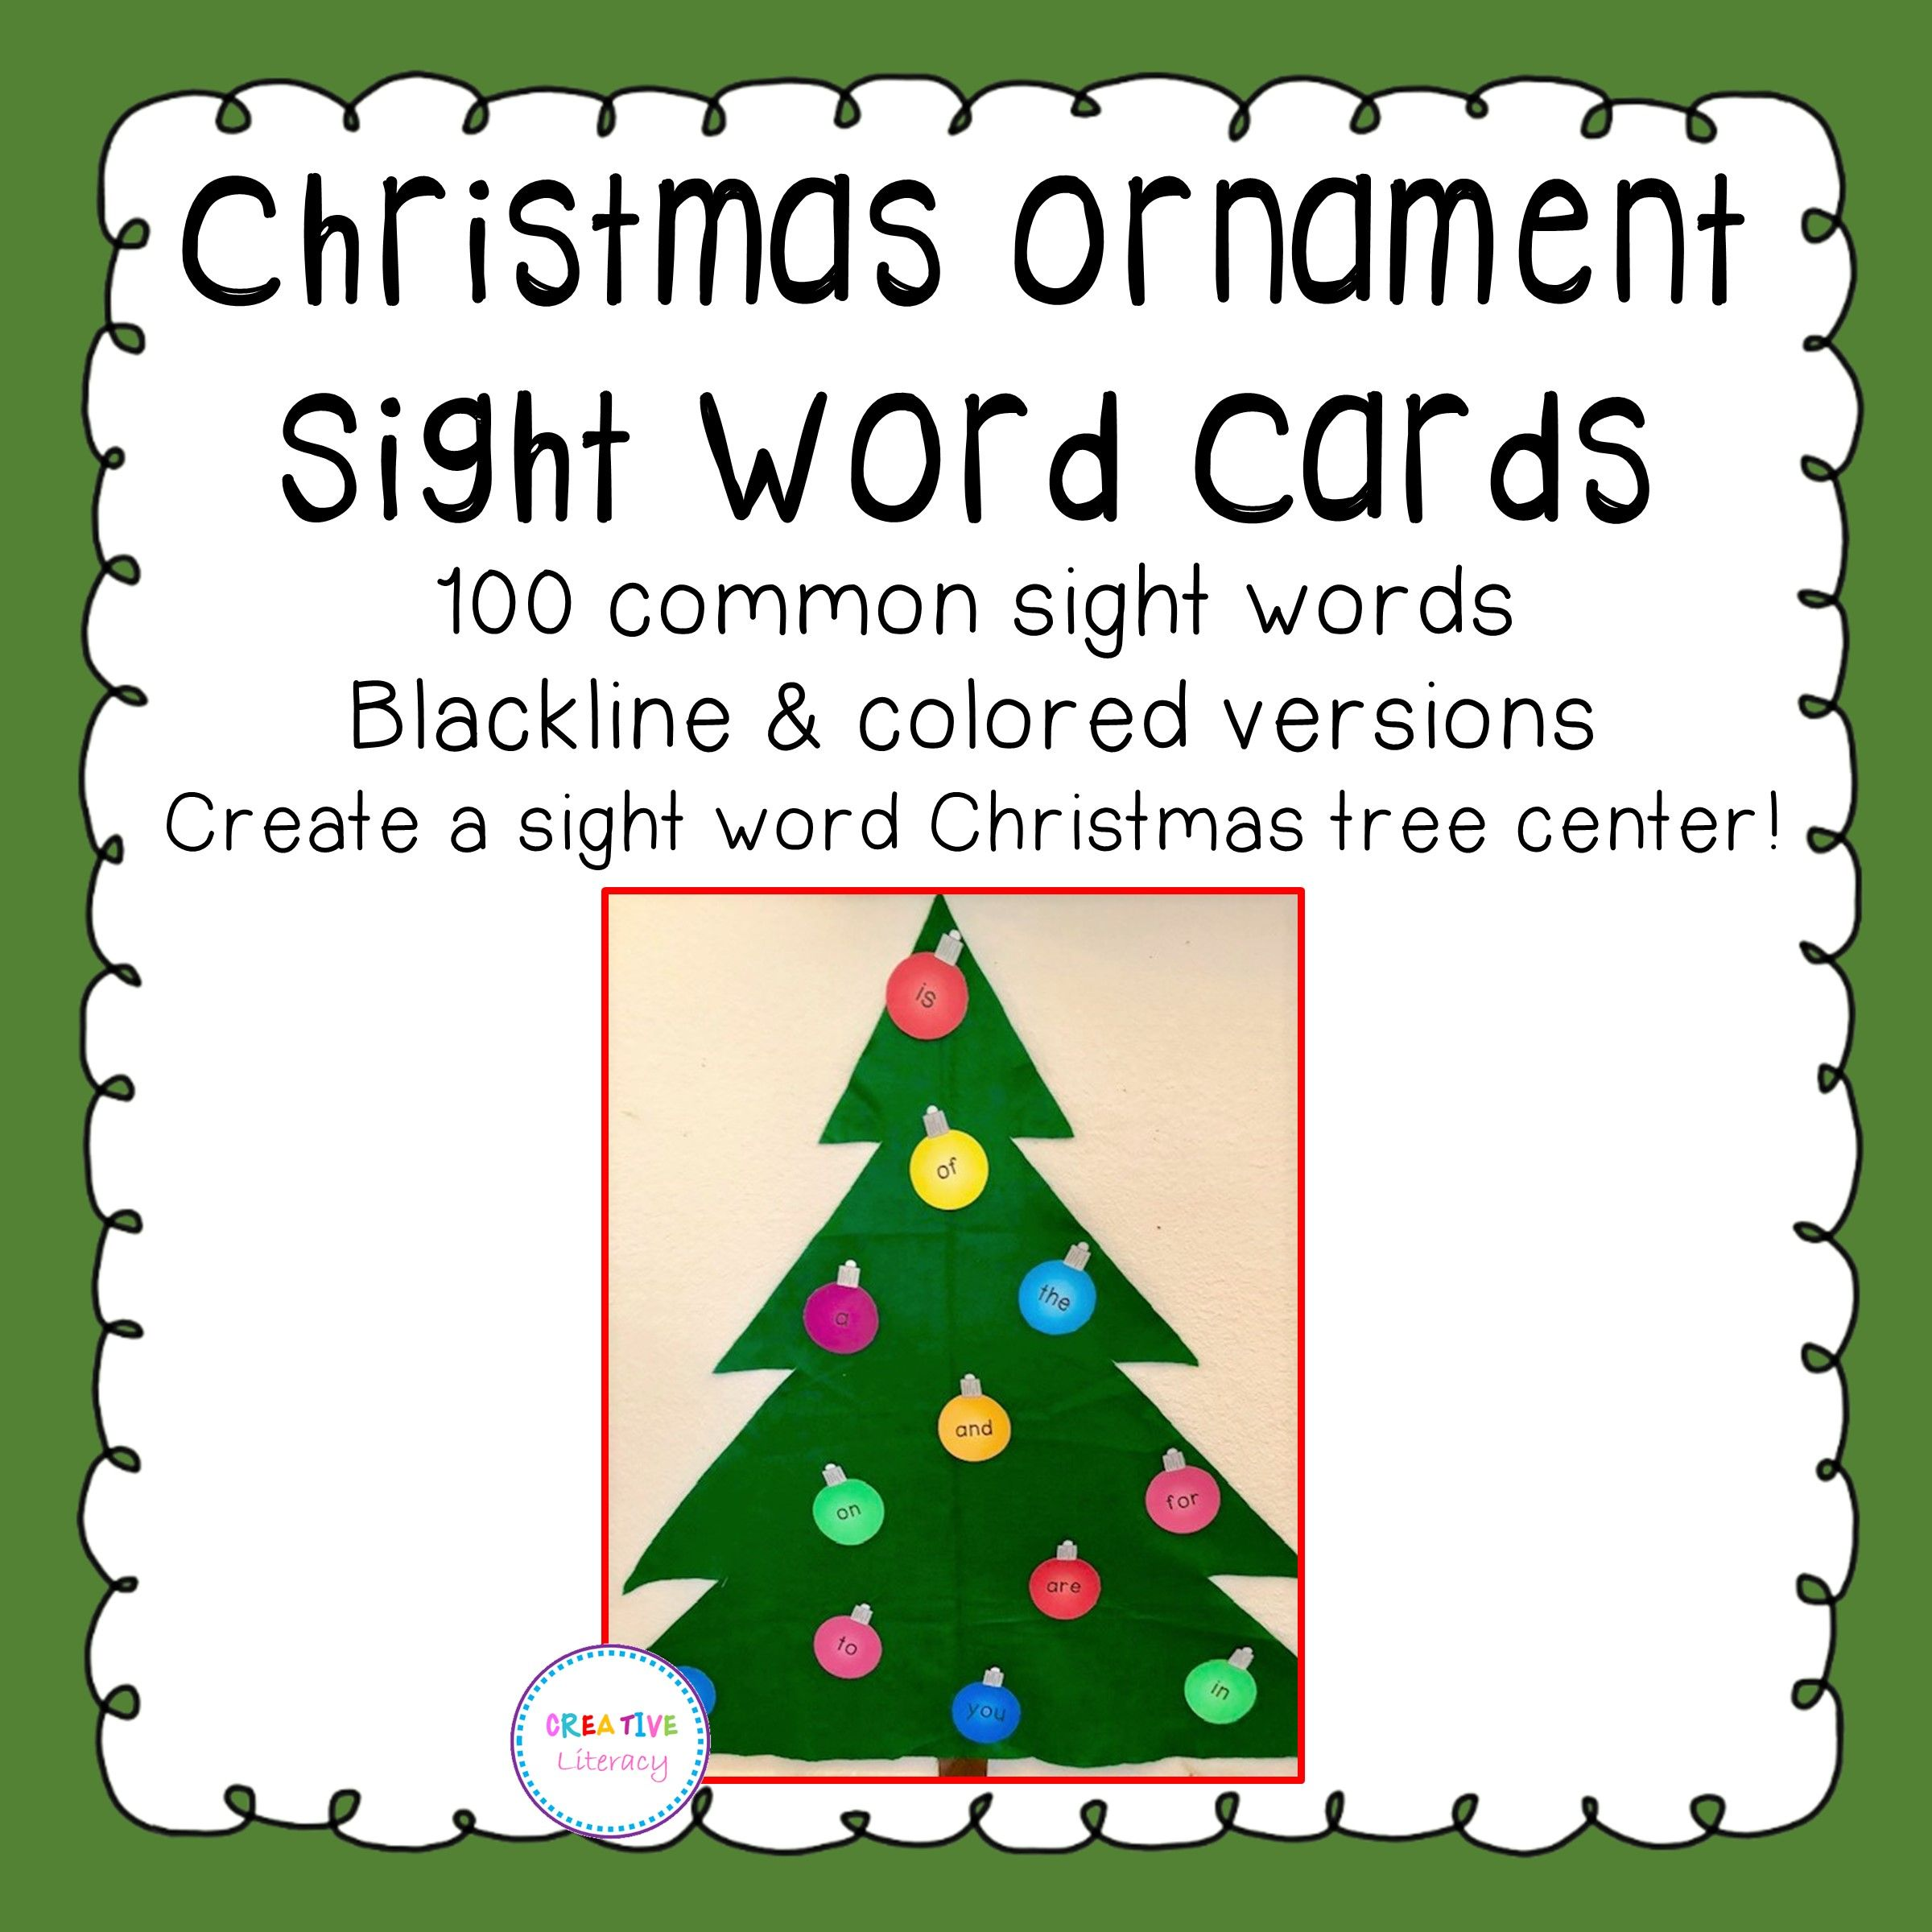 Christmas Tree Sight Word Cards From Creative Literacy